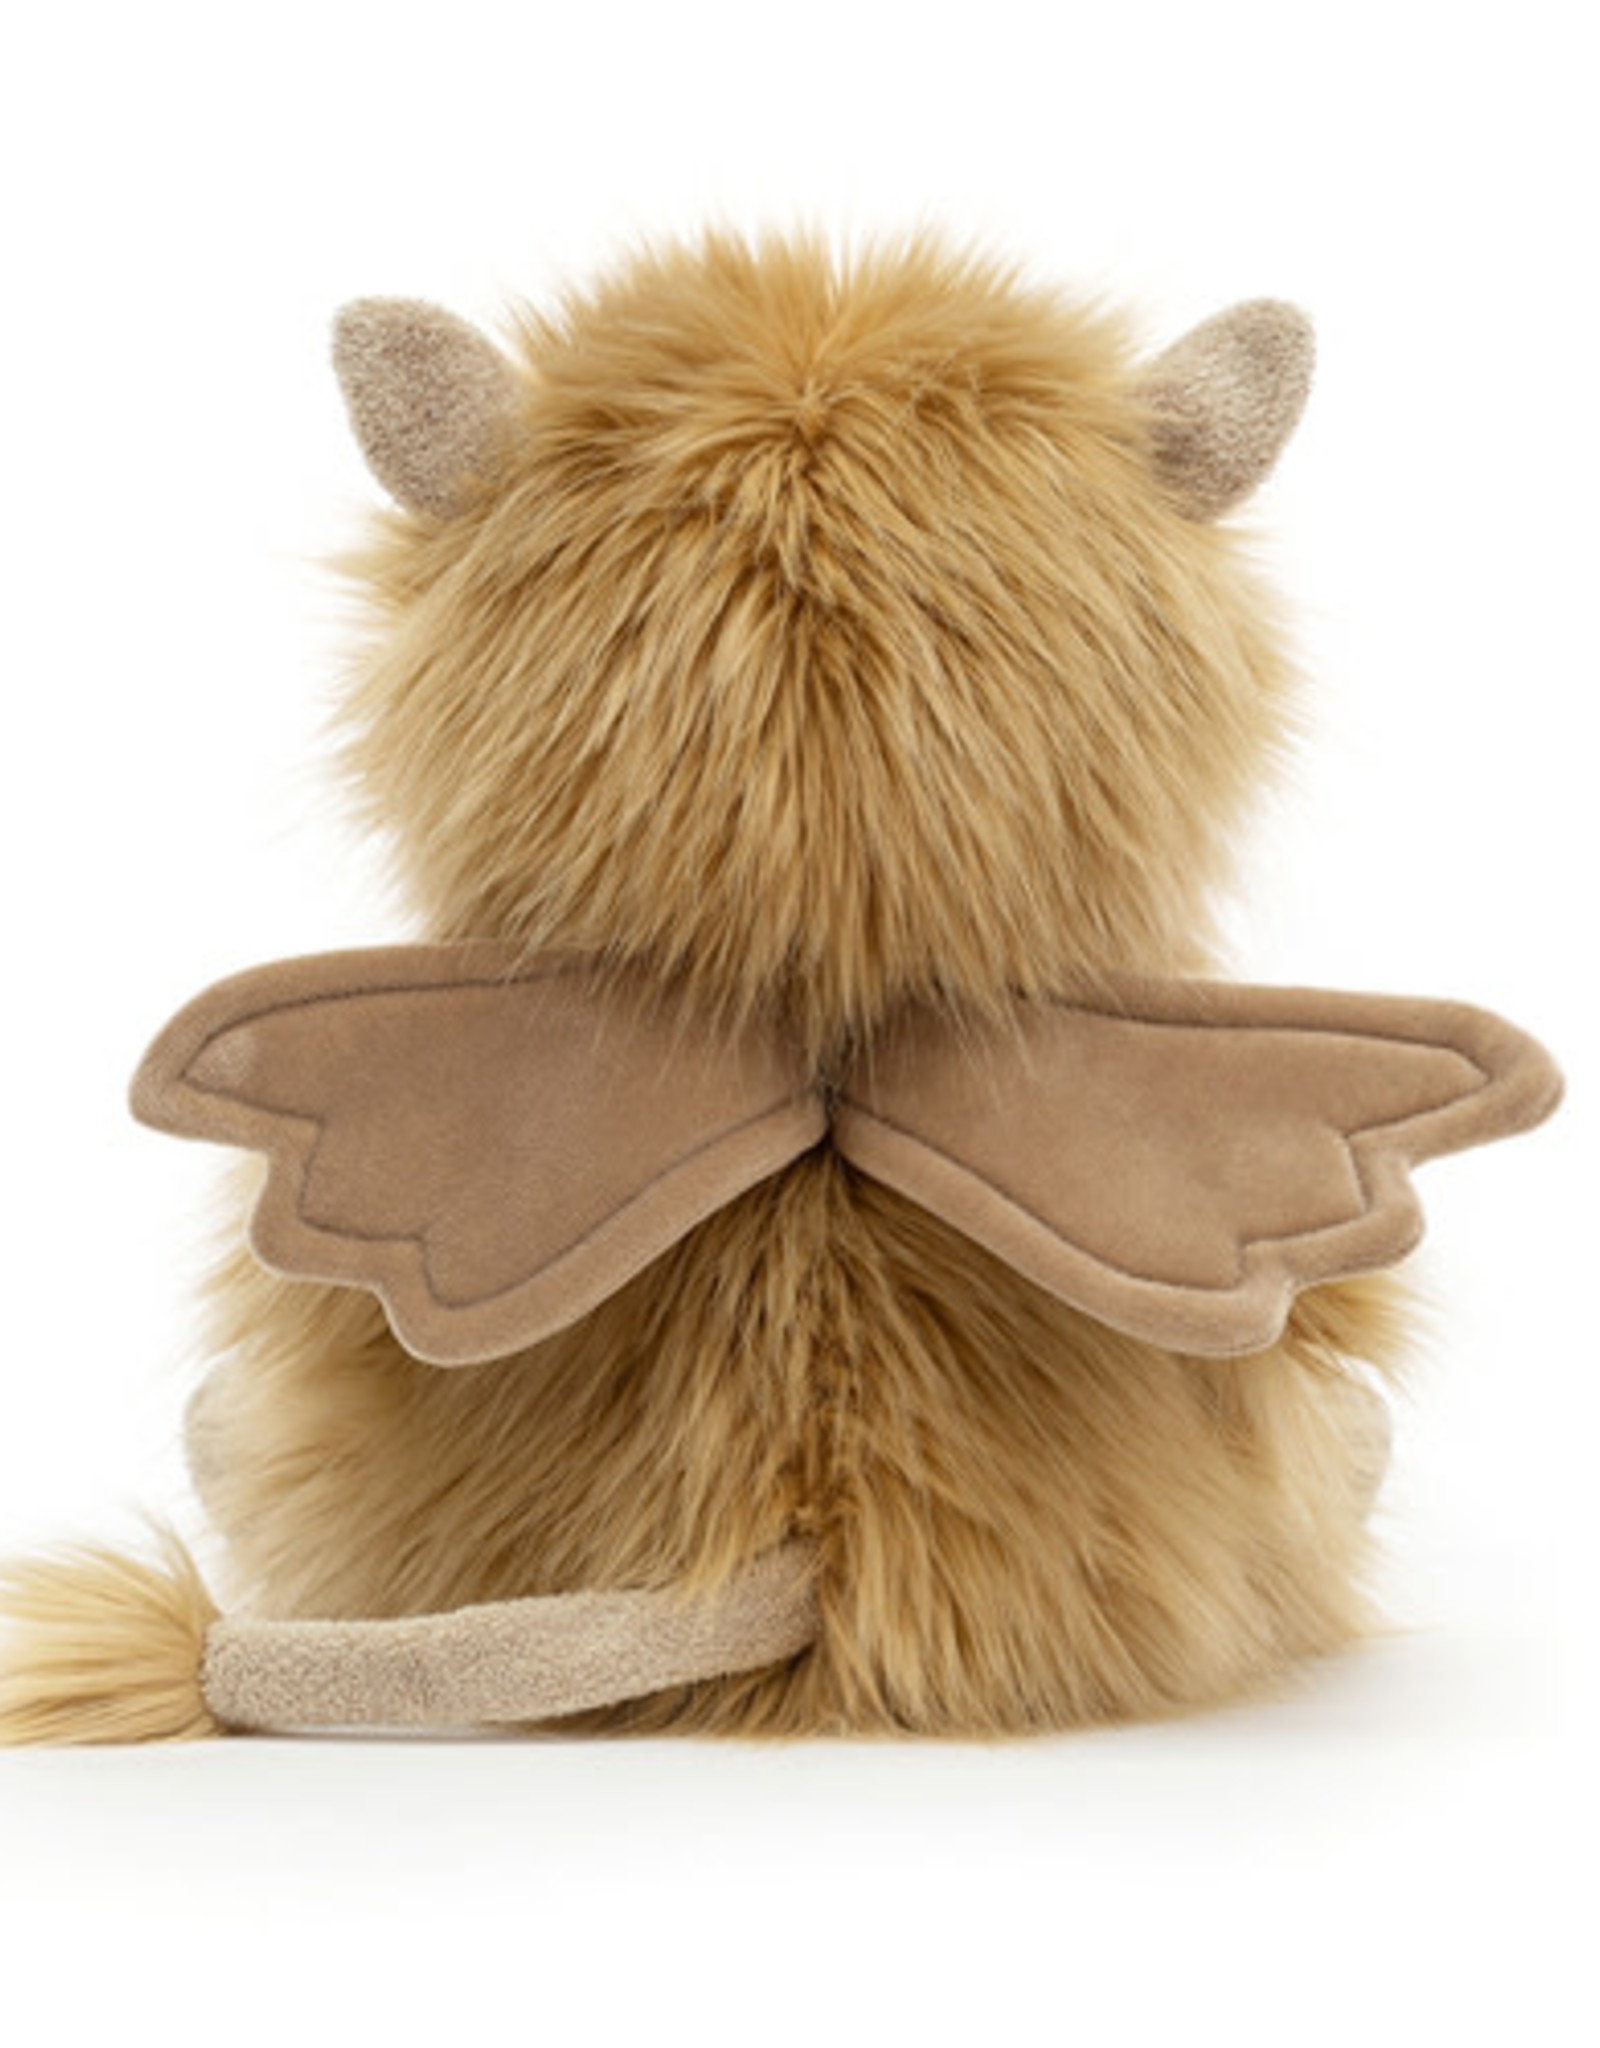 Jellycat Gus Gryphon